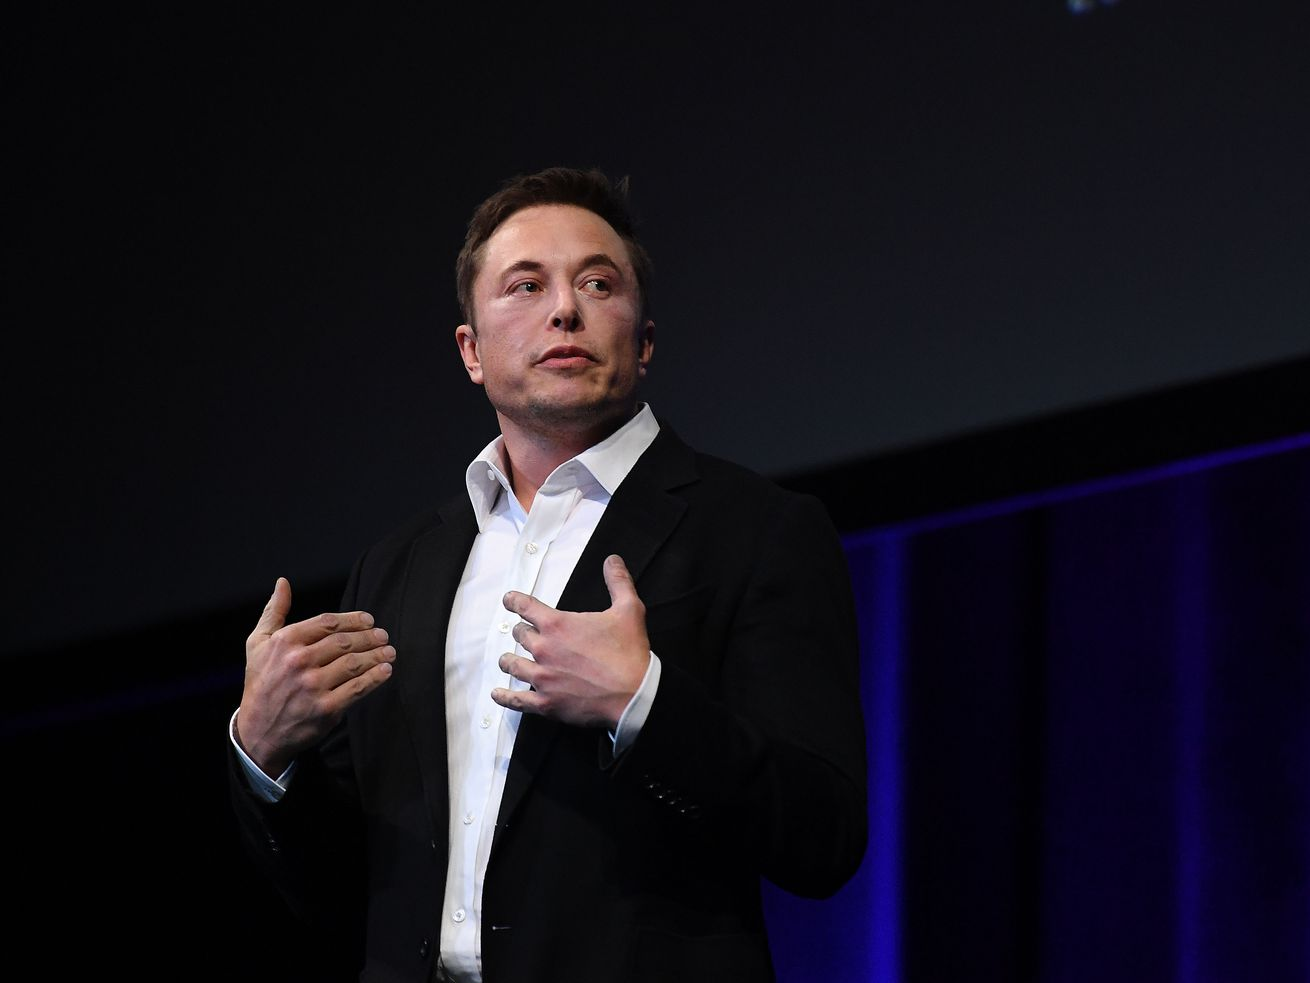 Tesla isn't shipping its $35,000 Model 3. That's a problem if Elon Musk wants the company to appeal to a mass market.